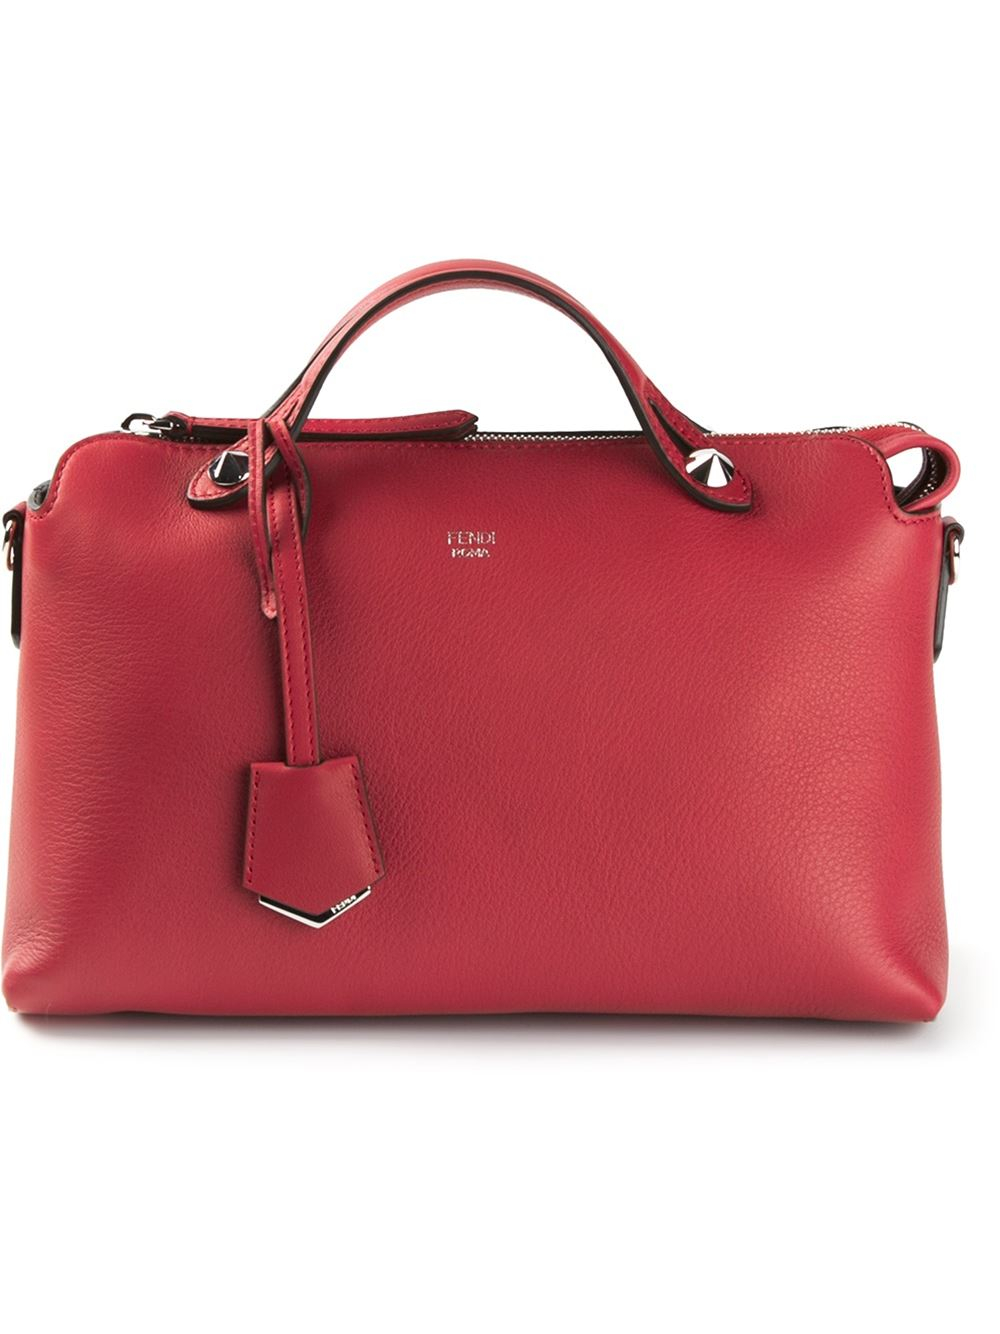 a8ce75a37a5b wholesale lyst fendi by the way leather shoulder bag in red a9643 7515f